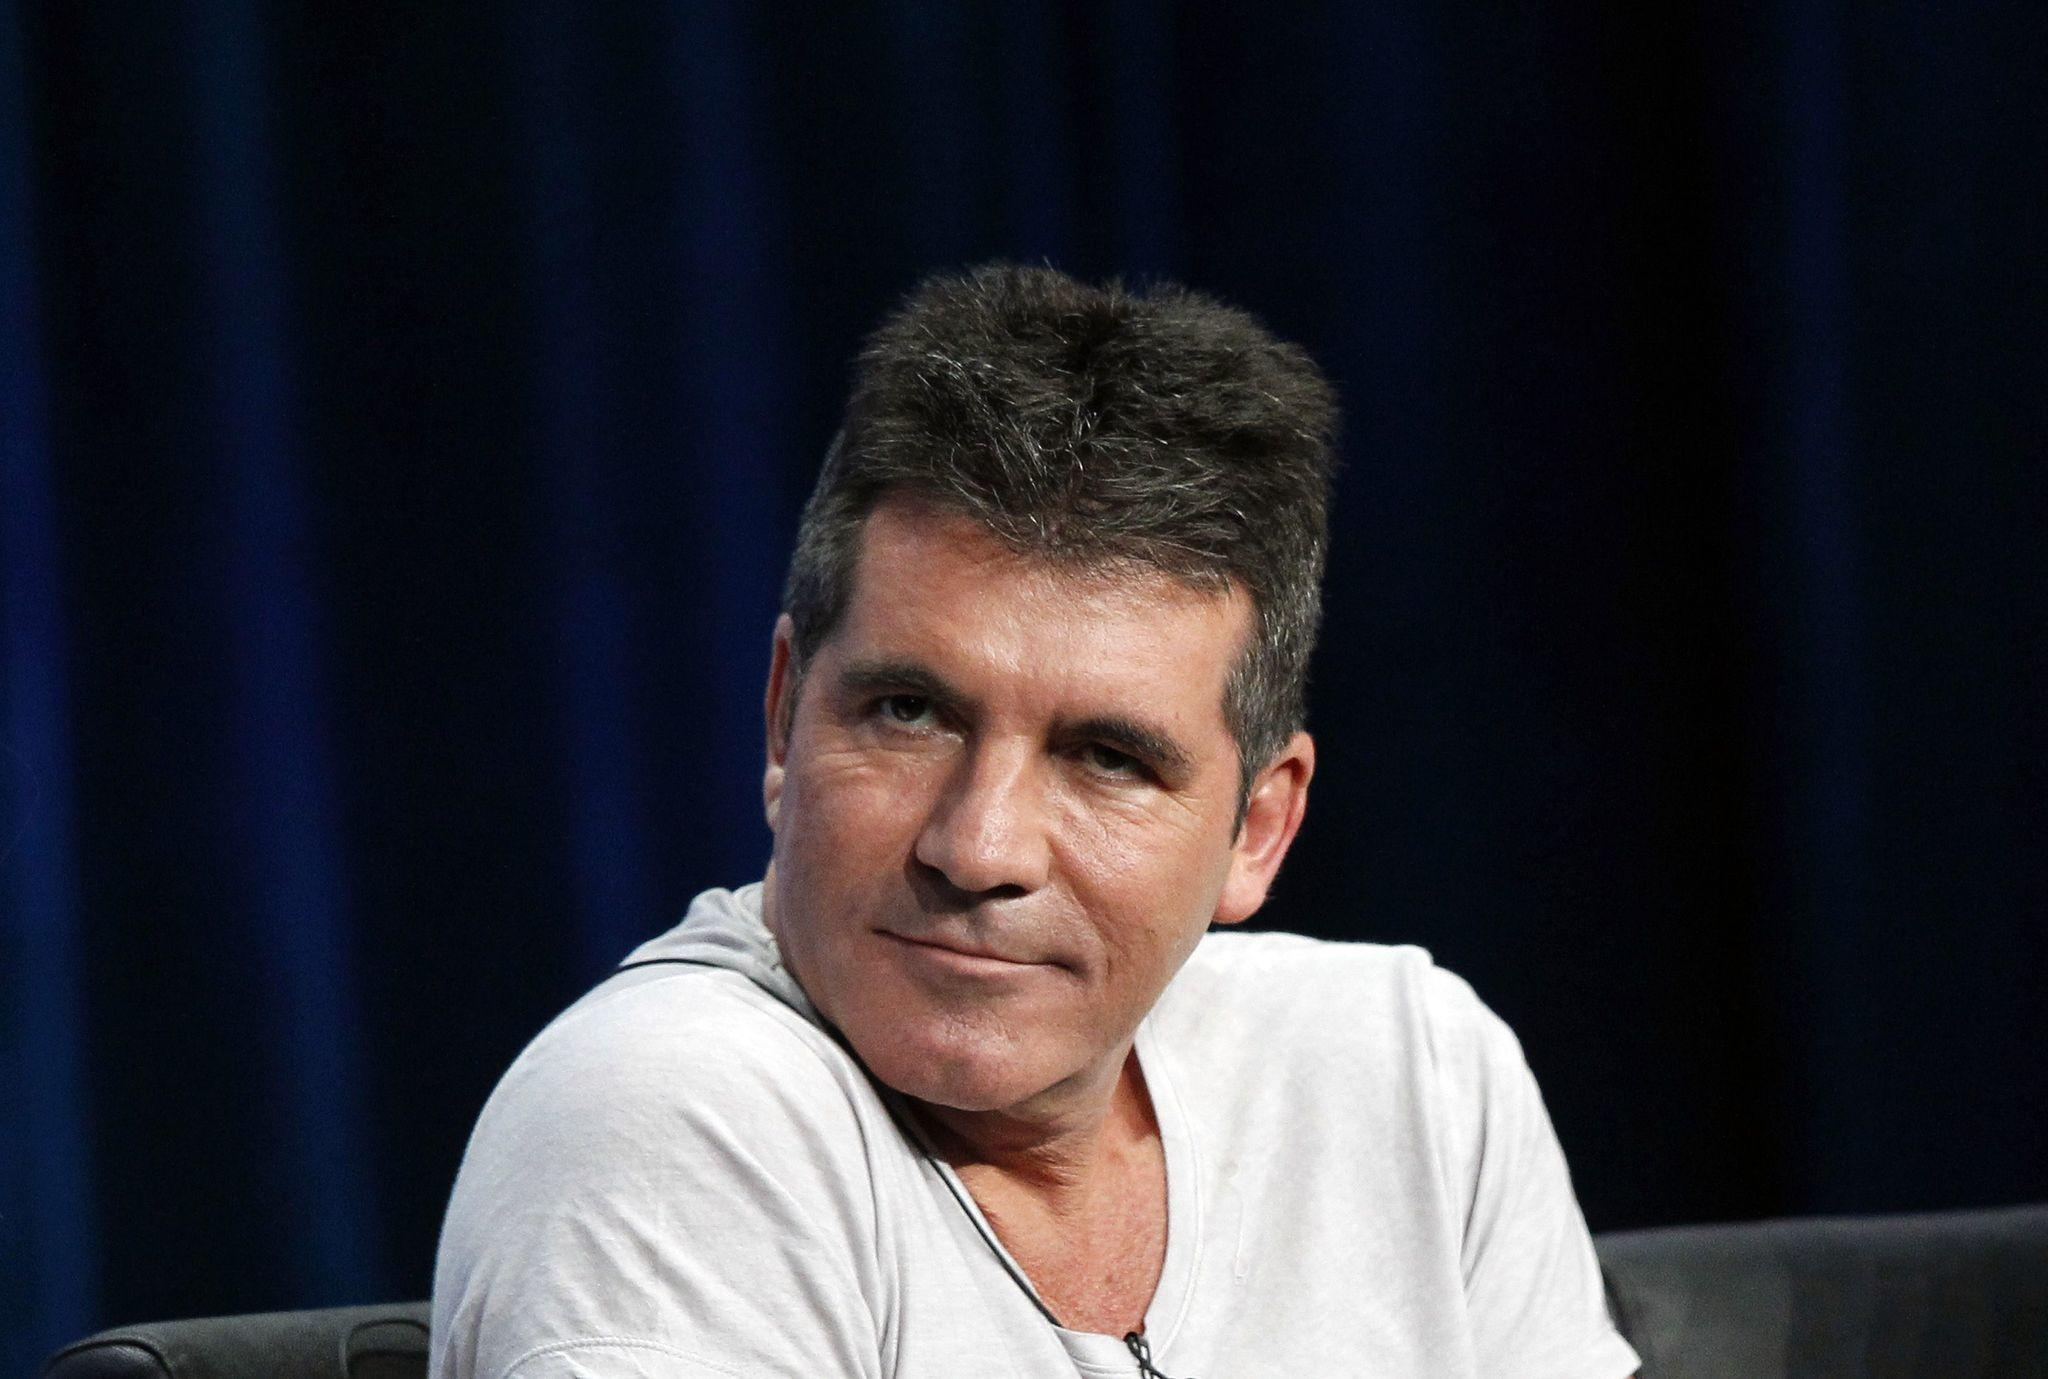 Simon Cowell who had long said fatherhood was not in his plans, welcomed a son on Feb. 14.